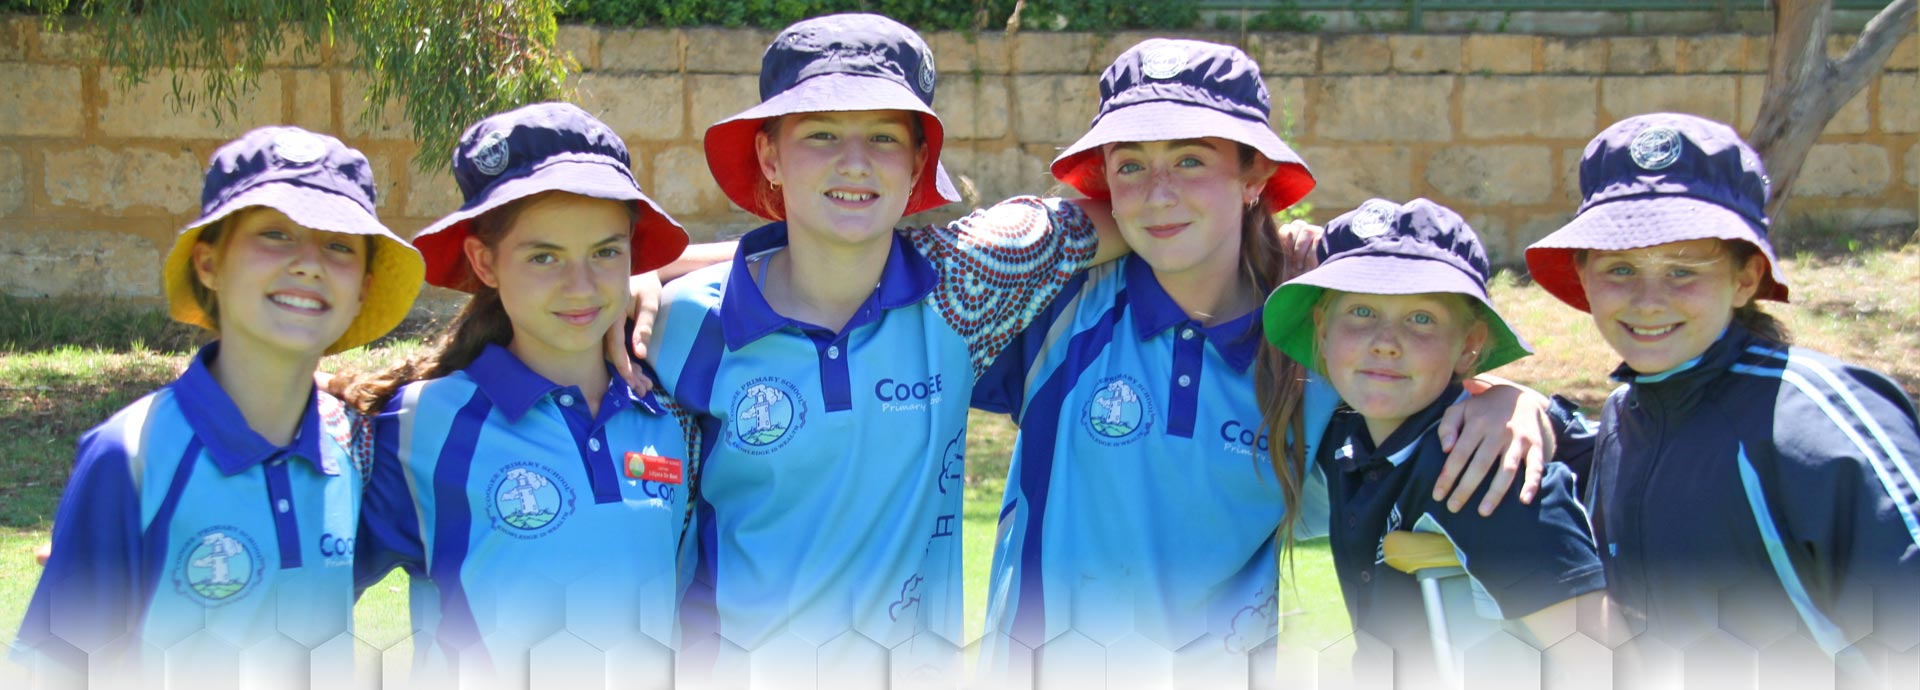 UNIFORM SHOP COOGEE PRIMARY SCHOOL